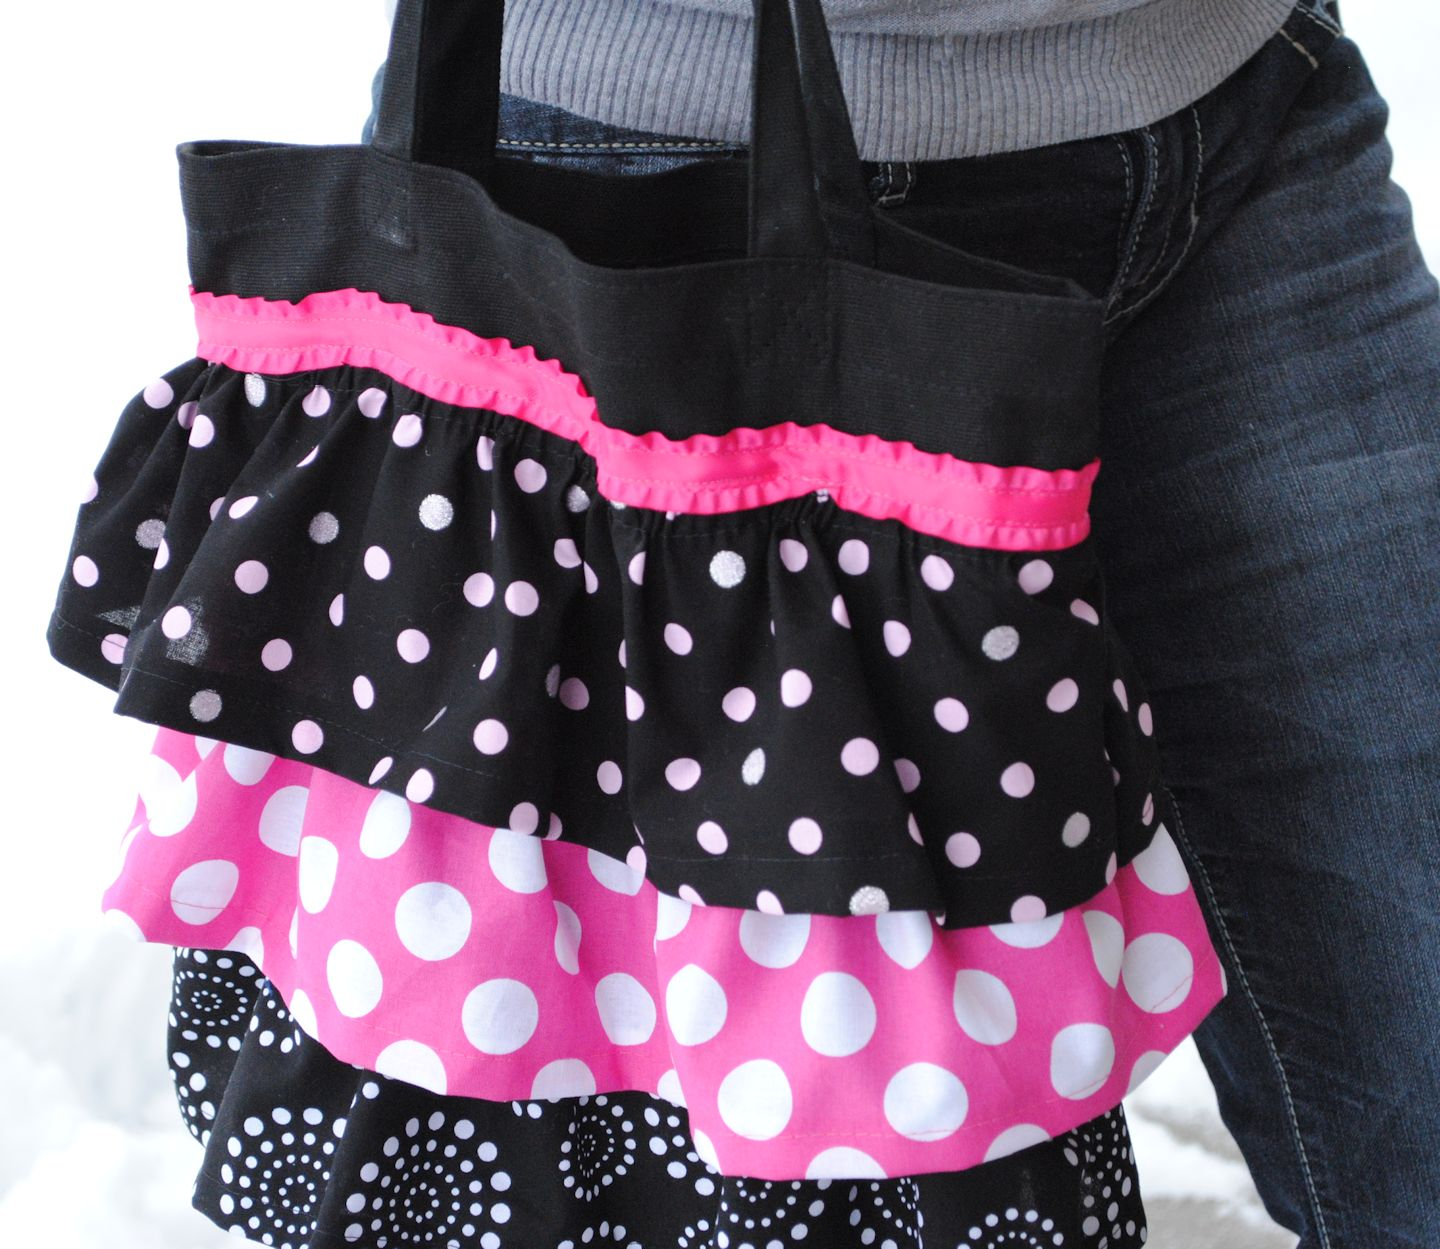 Ruffle Tote Bag Tutorial